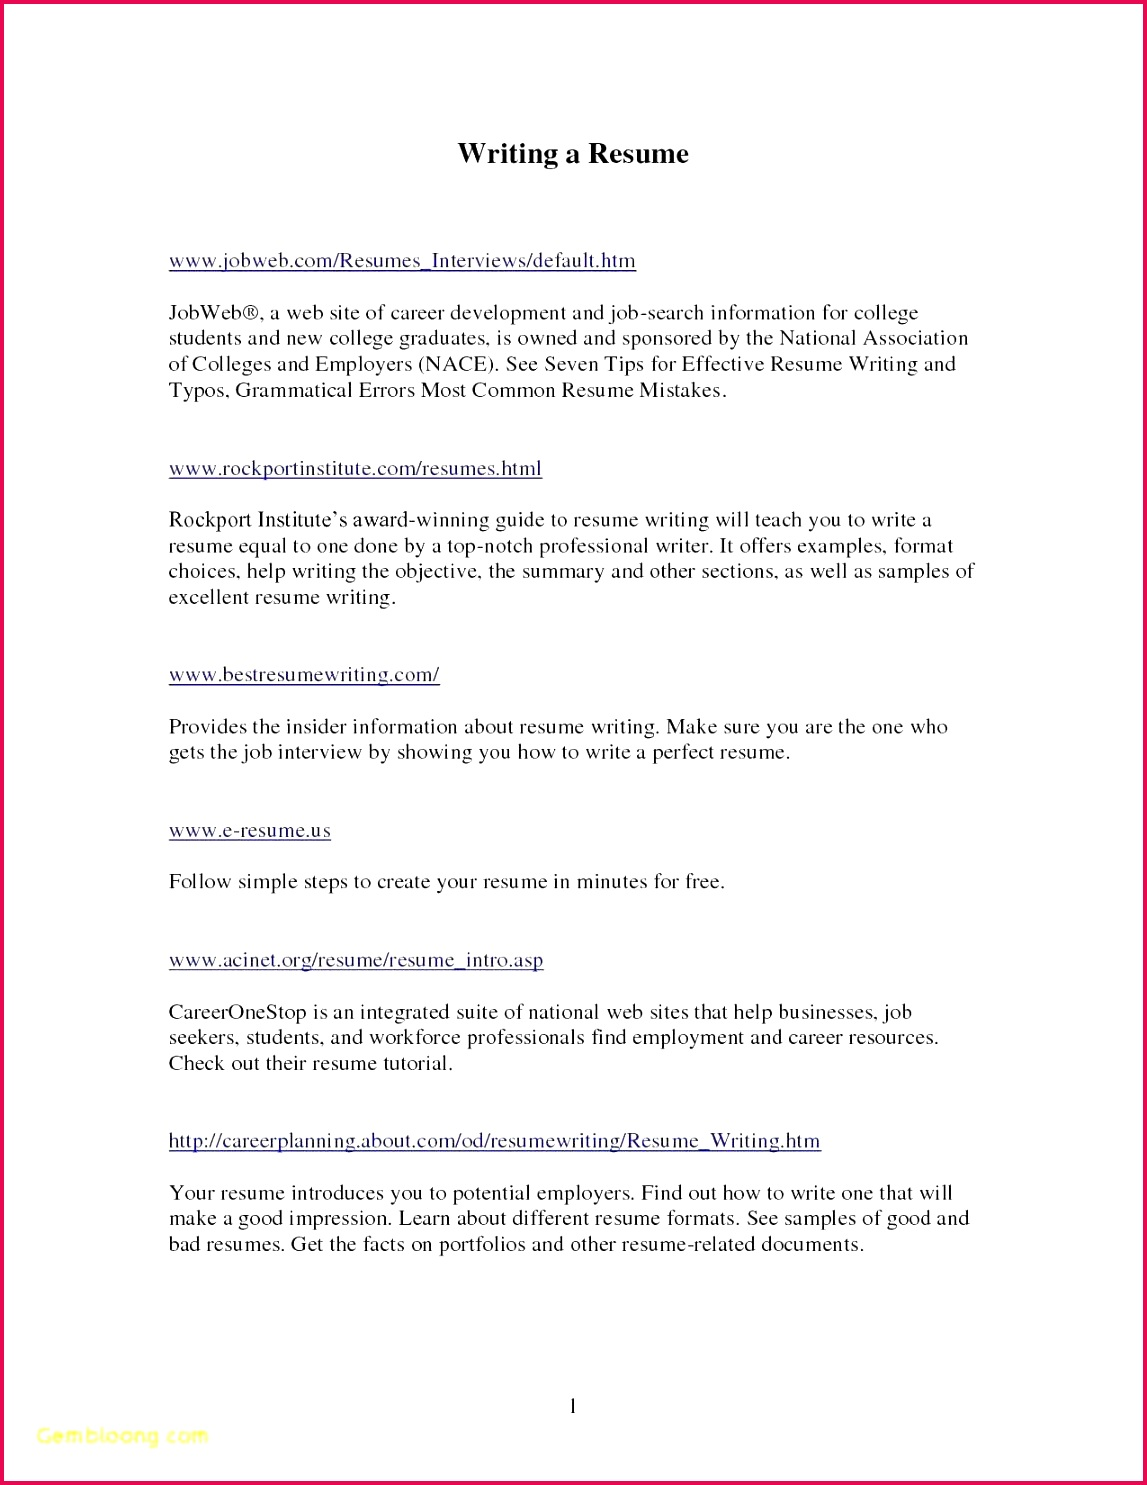 continuing education certificate template free new free powerpoint templates mechatronics lovely 25 unique prize winner of continuing education certificate template free